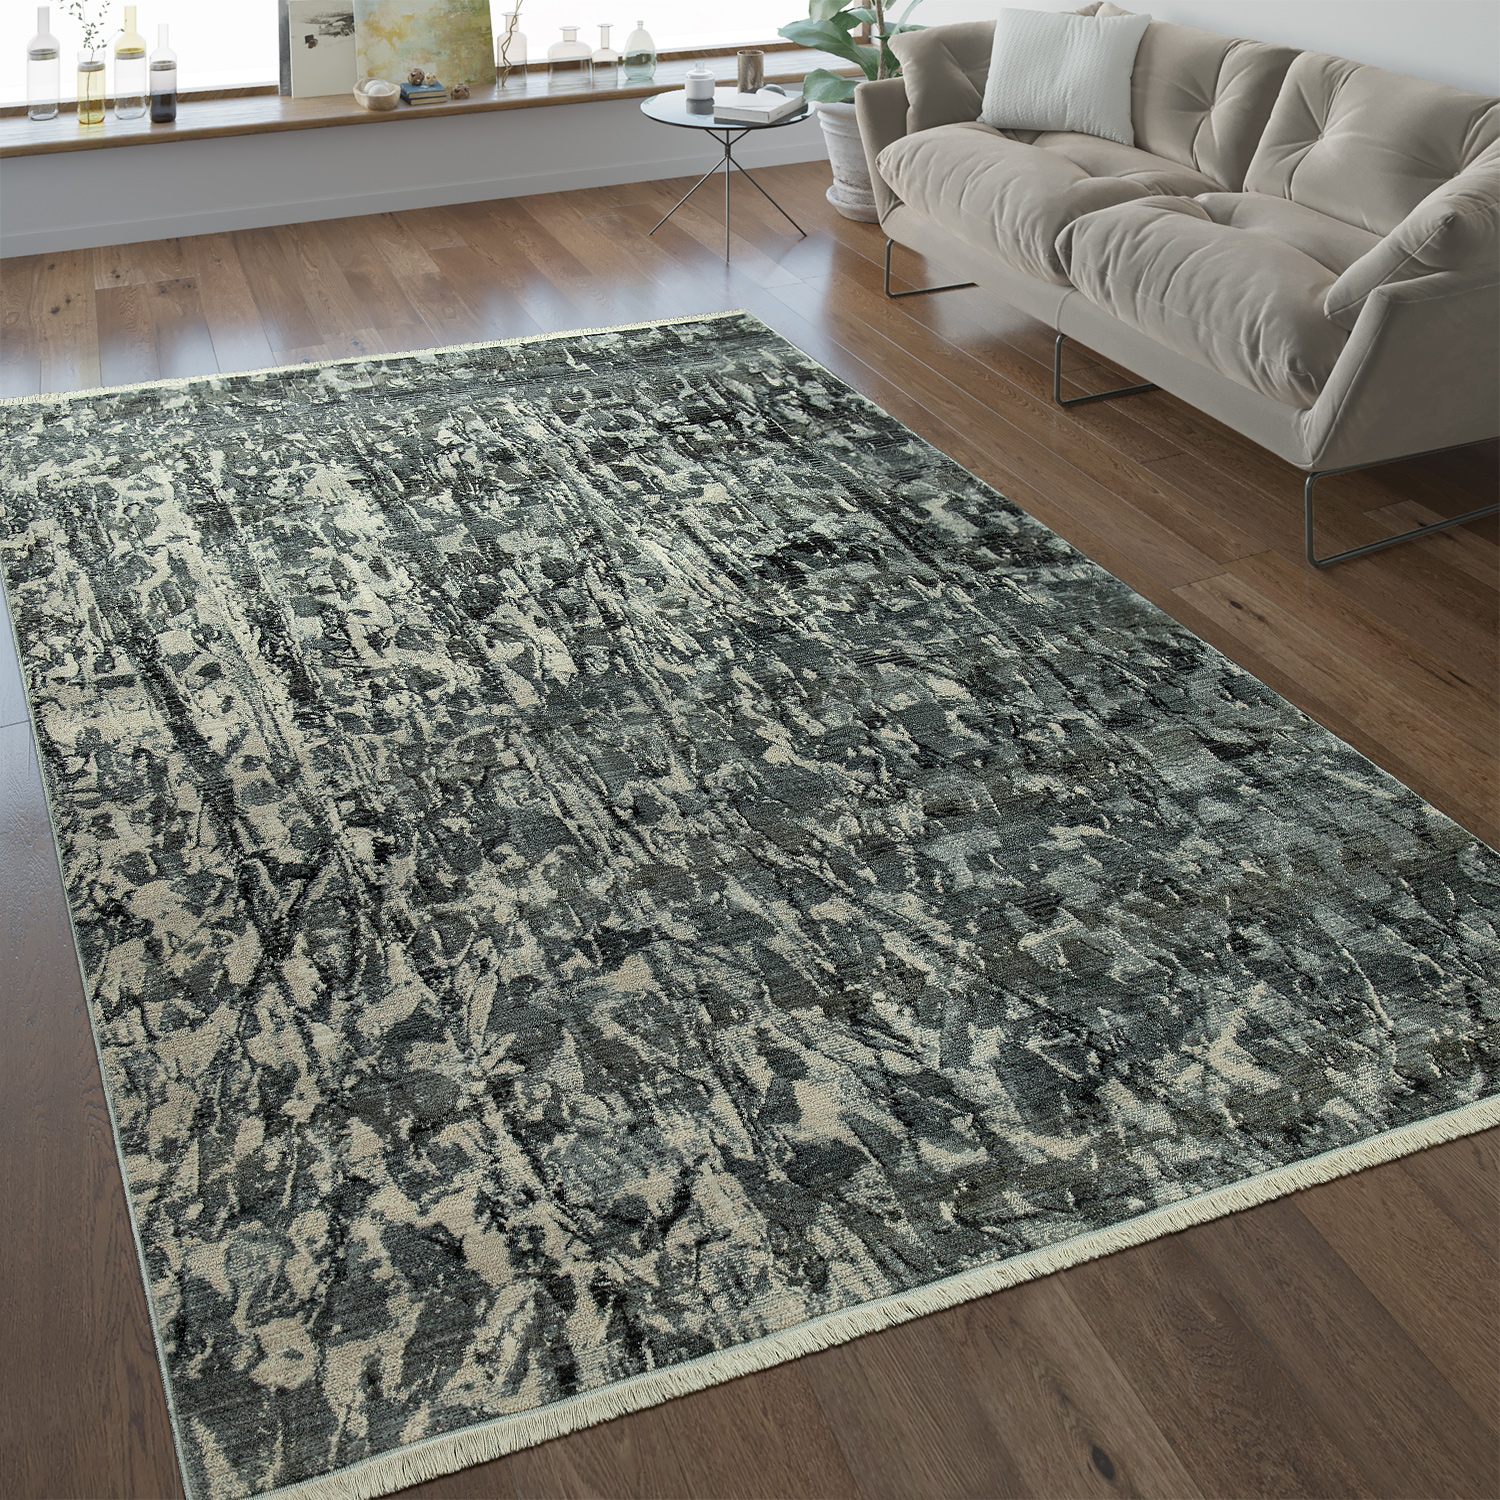 Designer Rug Abstract Design Silver Grey Rug24